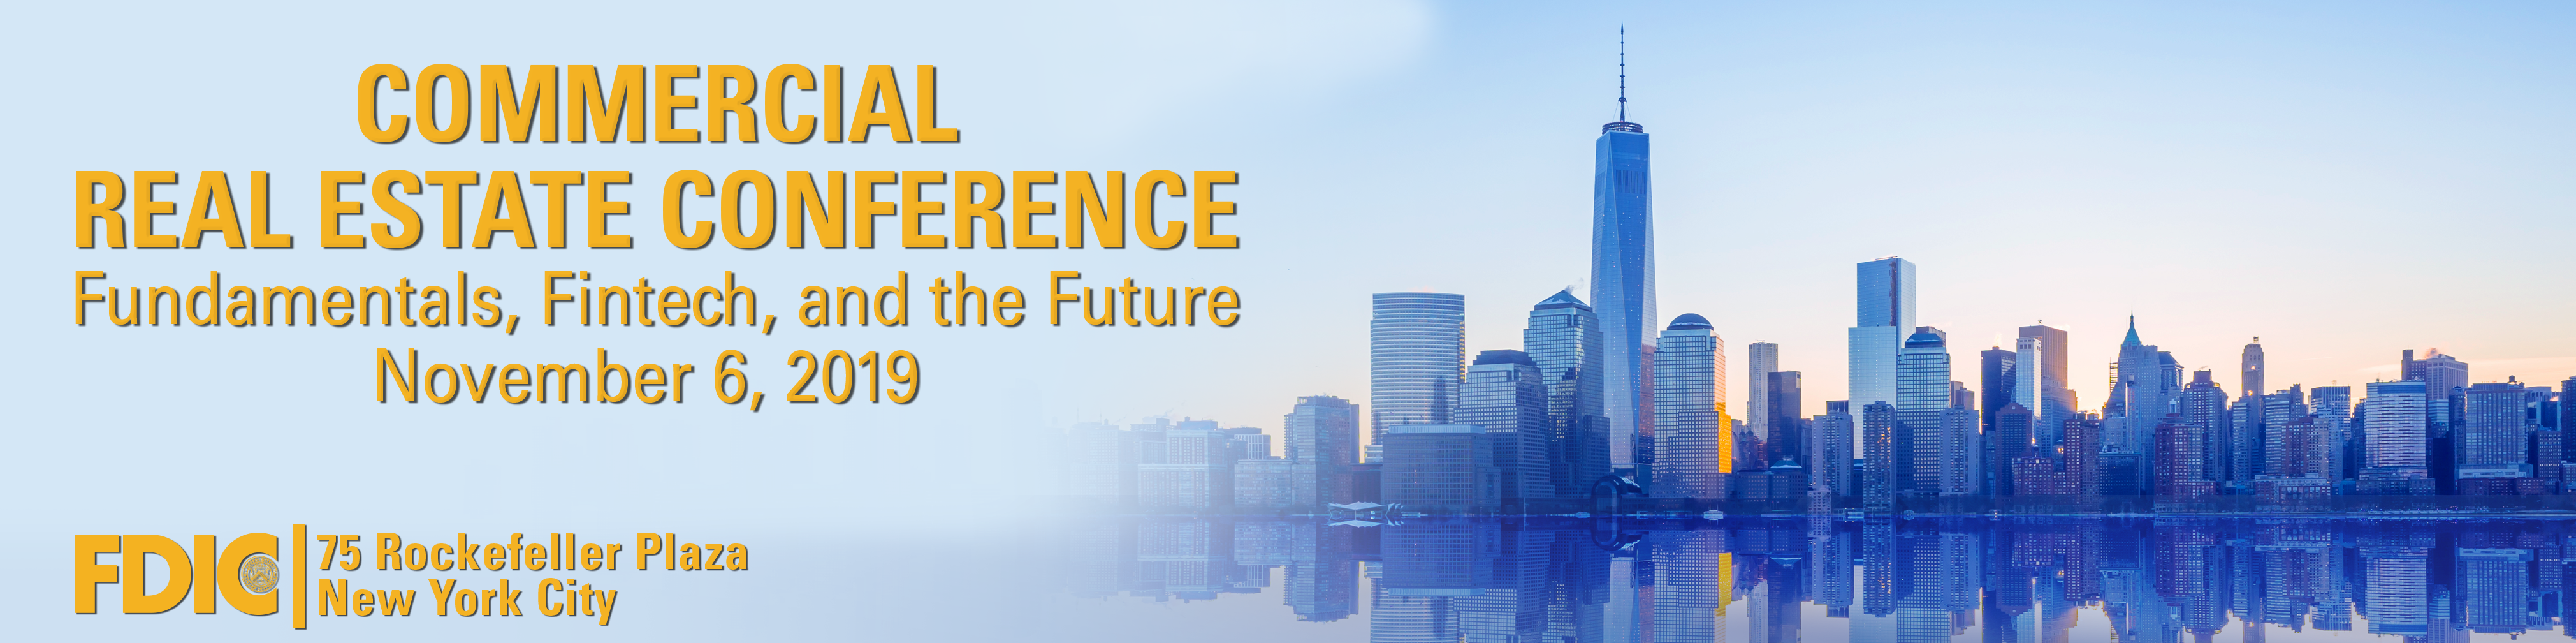 Commercial Real Estate Conference header